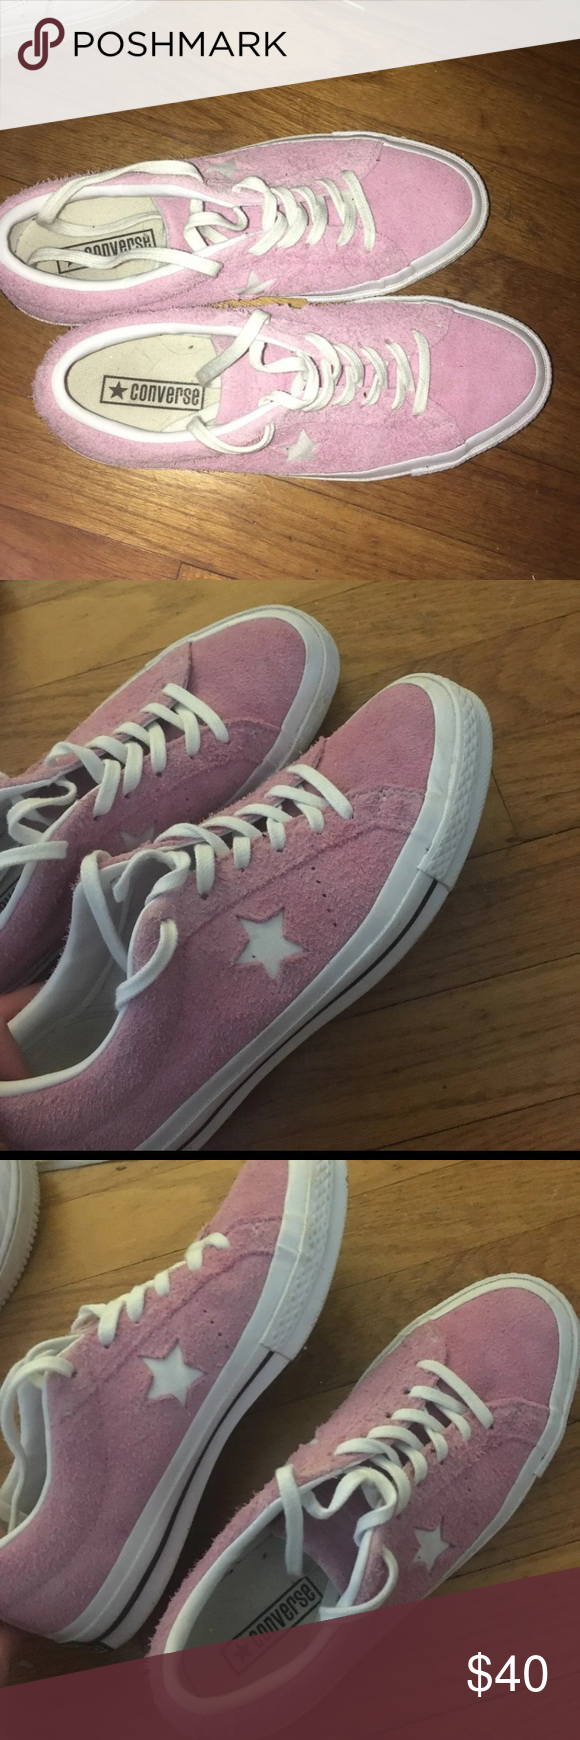 BRAND NEW PINK FUZZY CONVERSE ONE STAR